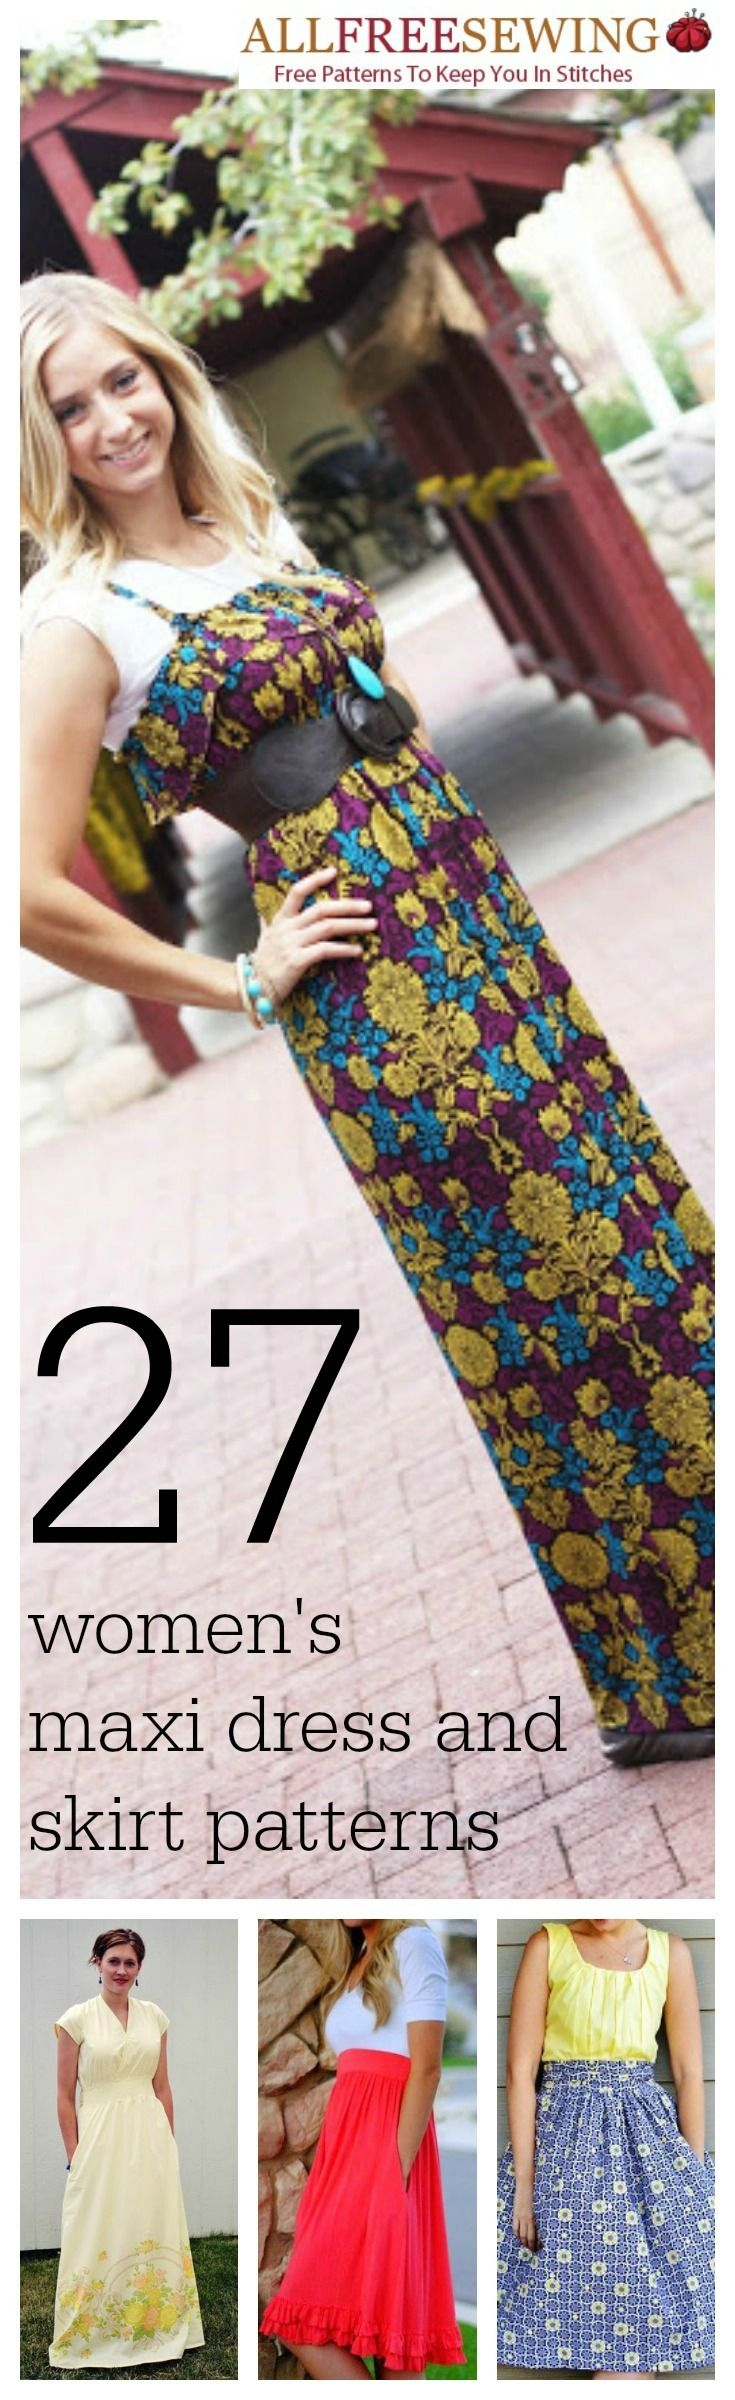 29 Long Dresses for Summer + Women's Maxi Dresses and Skirts | AllFreeSewing.com